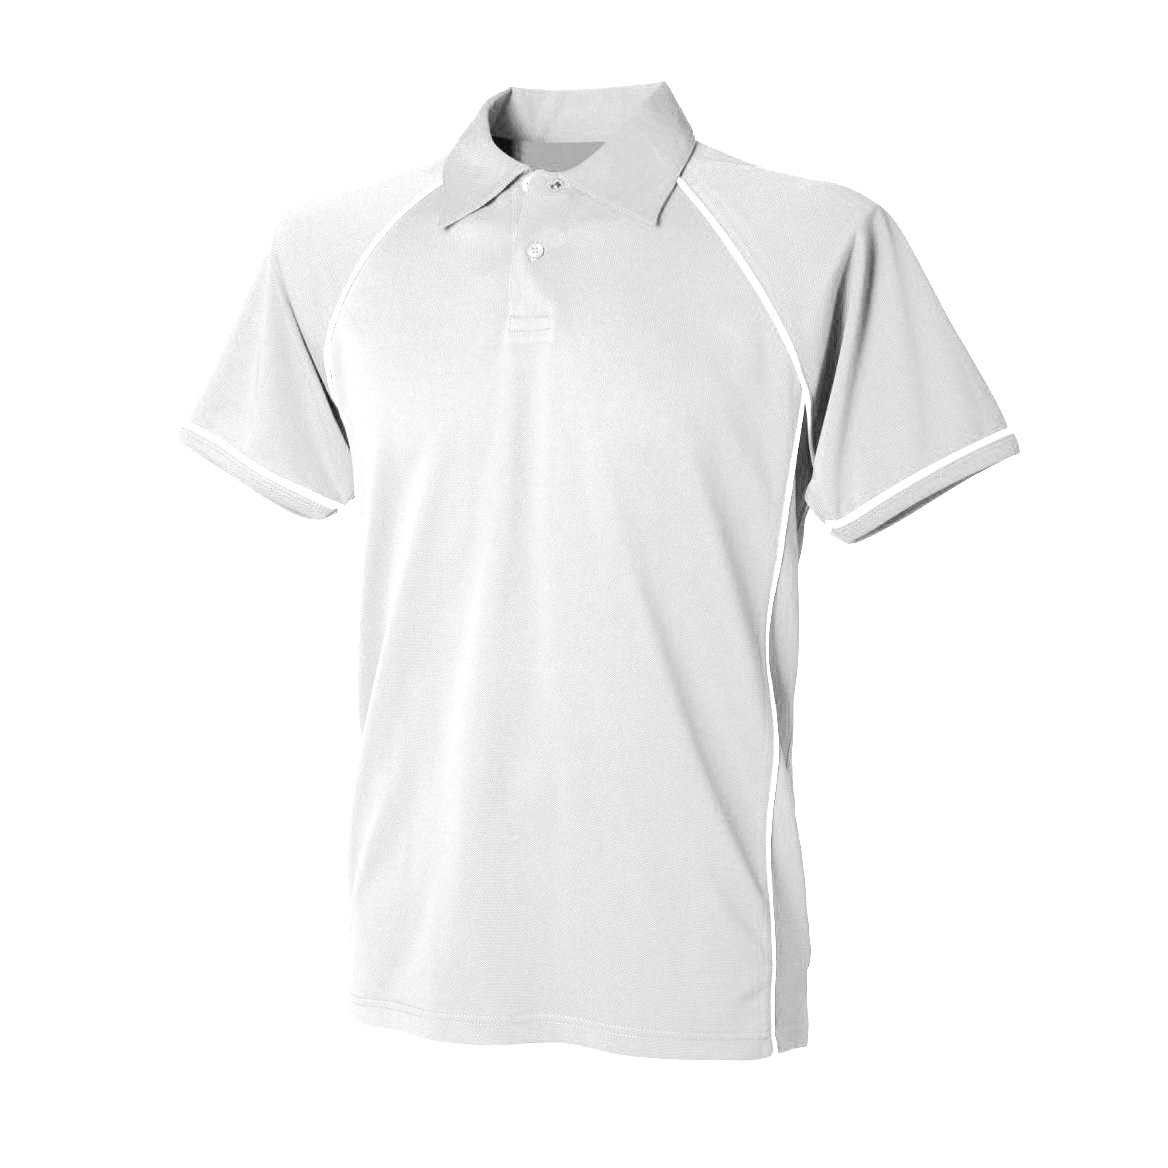 Finden & Hales Mens Piped Performance Sports Polo Shirt